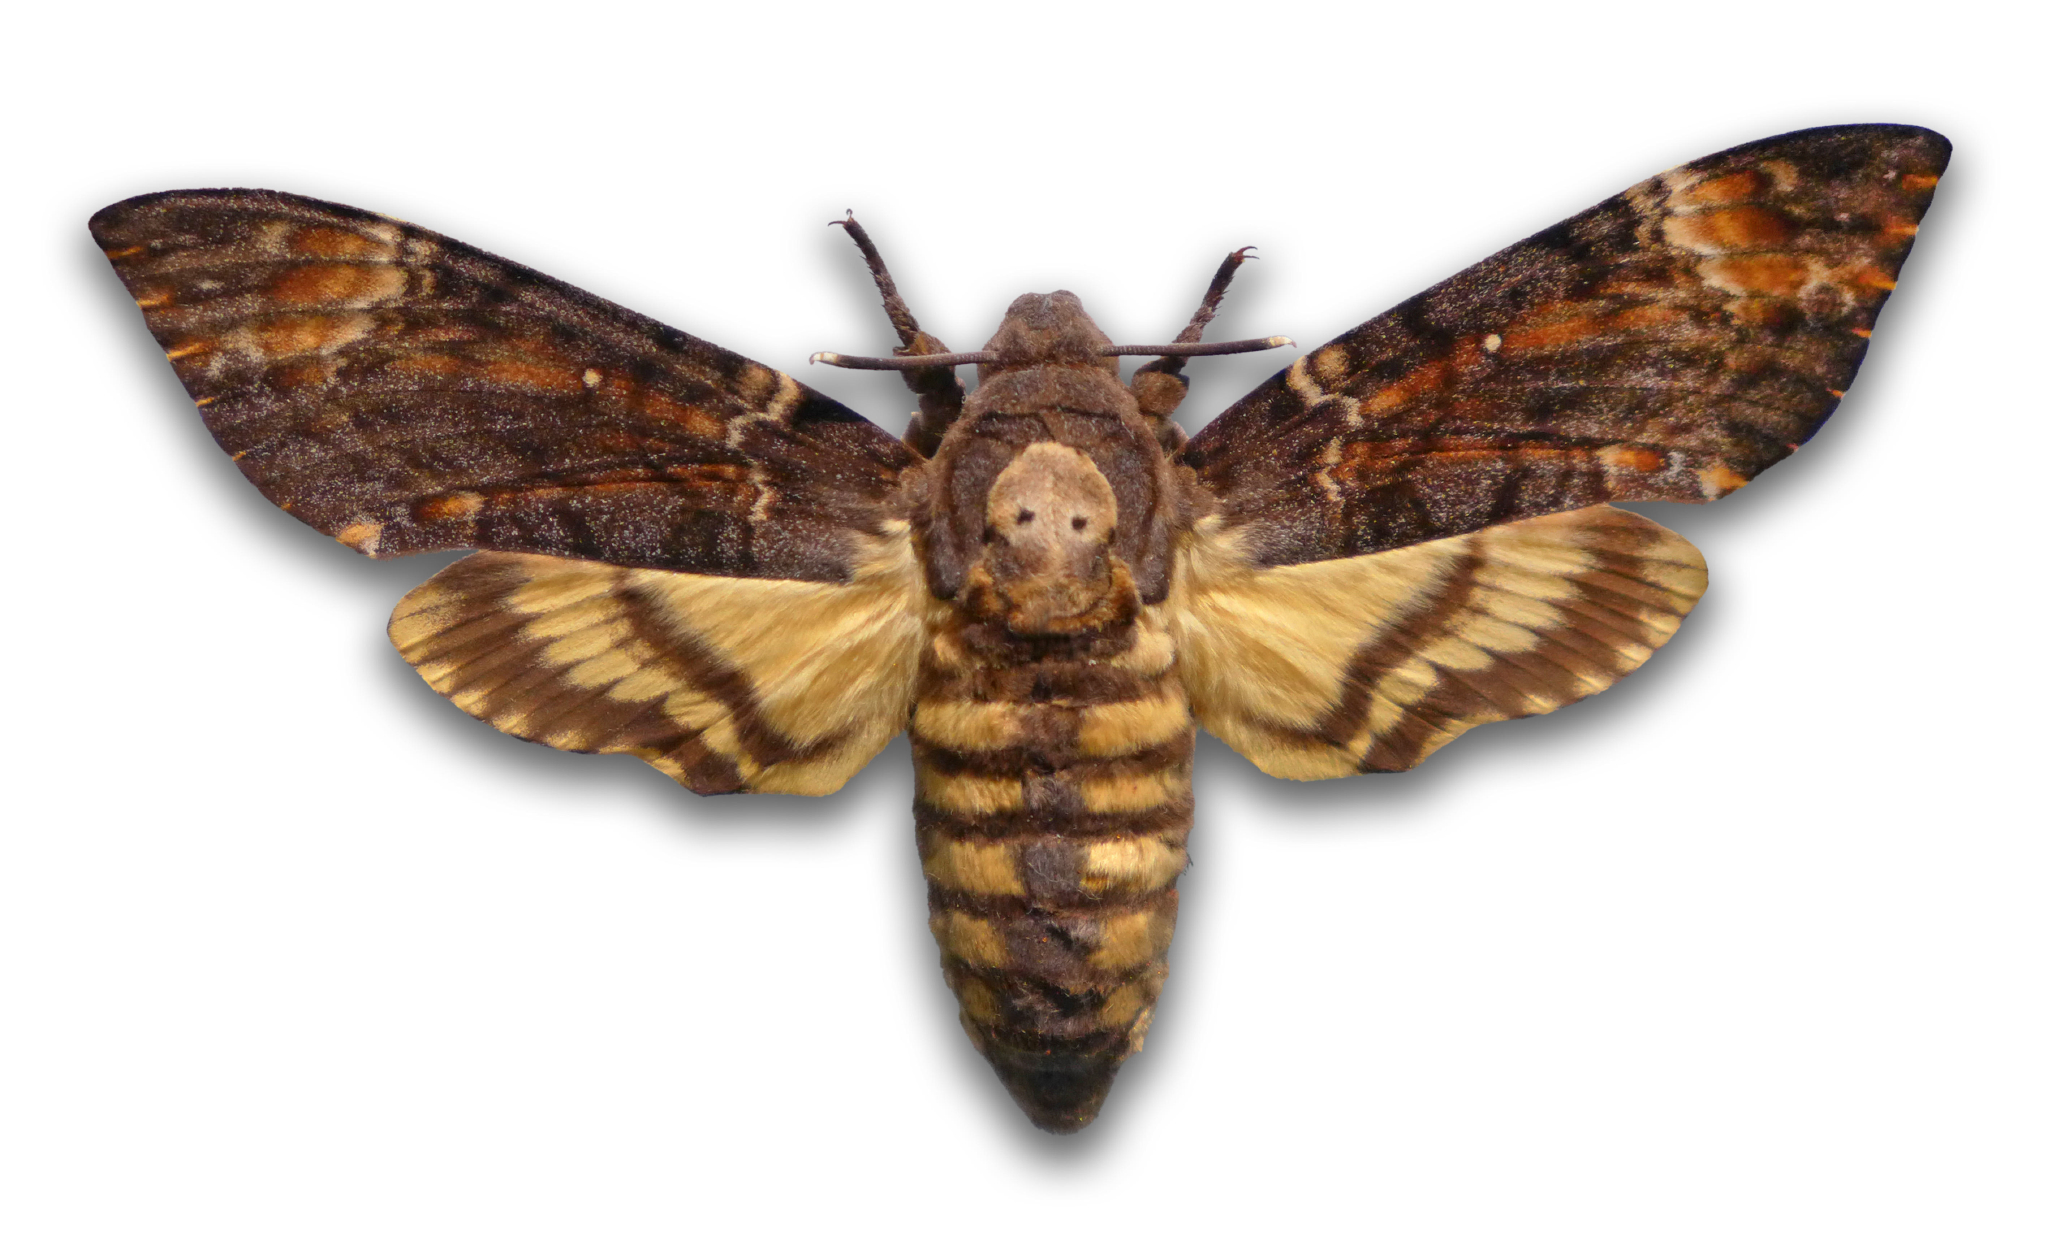 EBKYG2 death's-head hawkmoth (Acherontia atropos), stuffed death?s-head hawkmoth